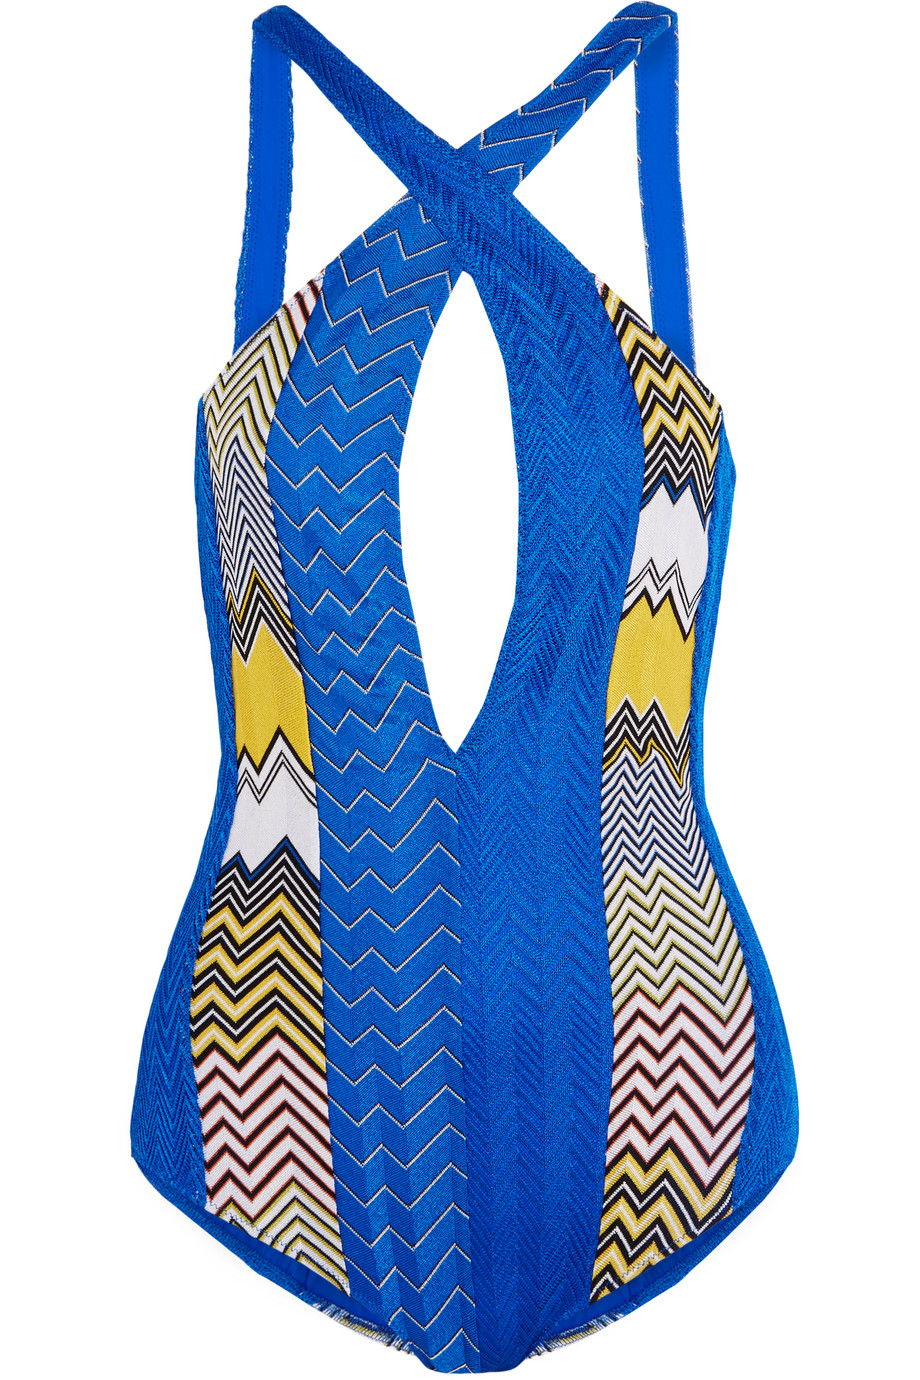 Missoni Mare Crochet-Knit Swimsuit, Bright Blue, Women's, Size: 38